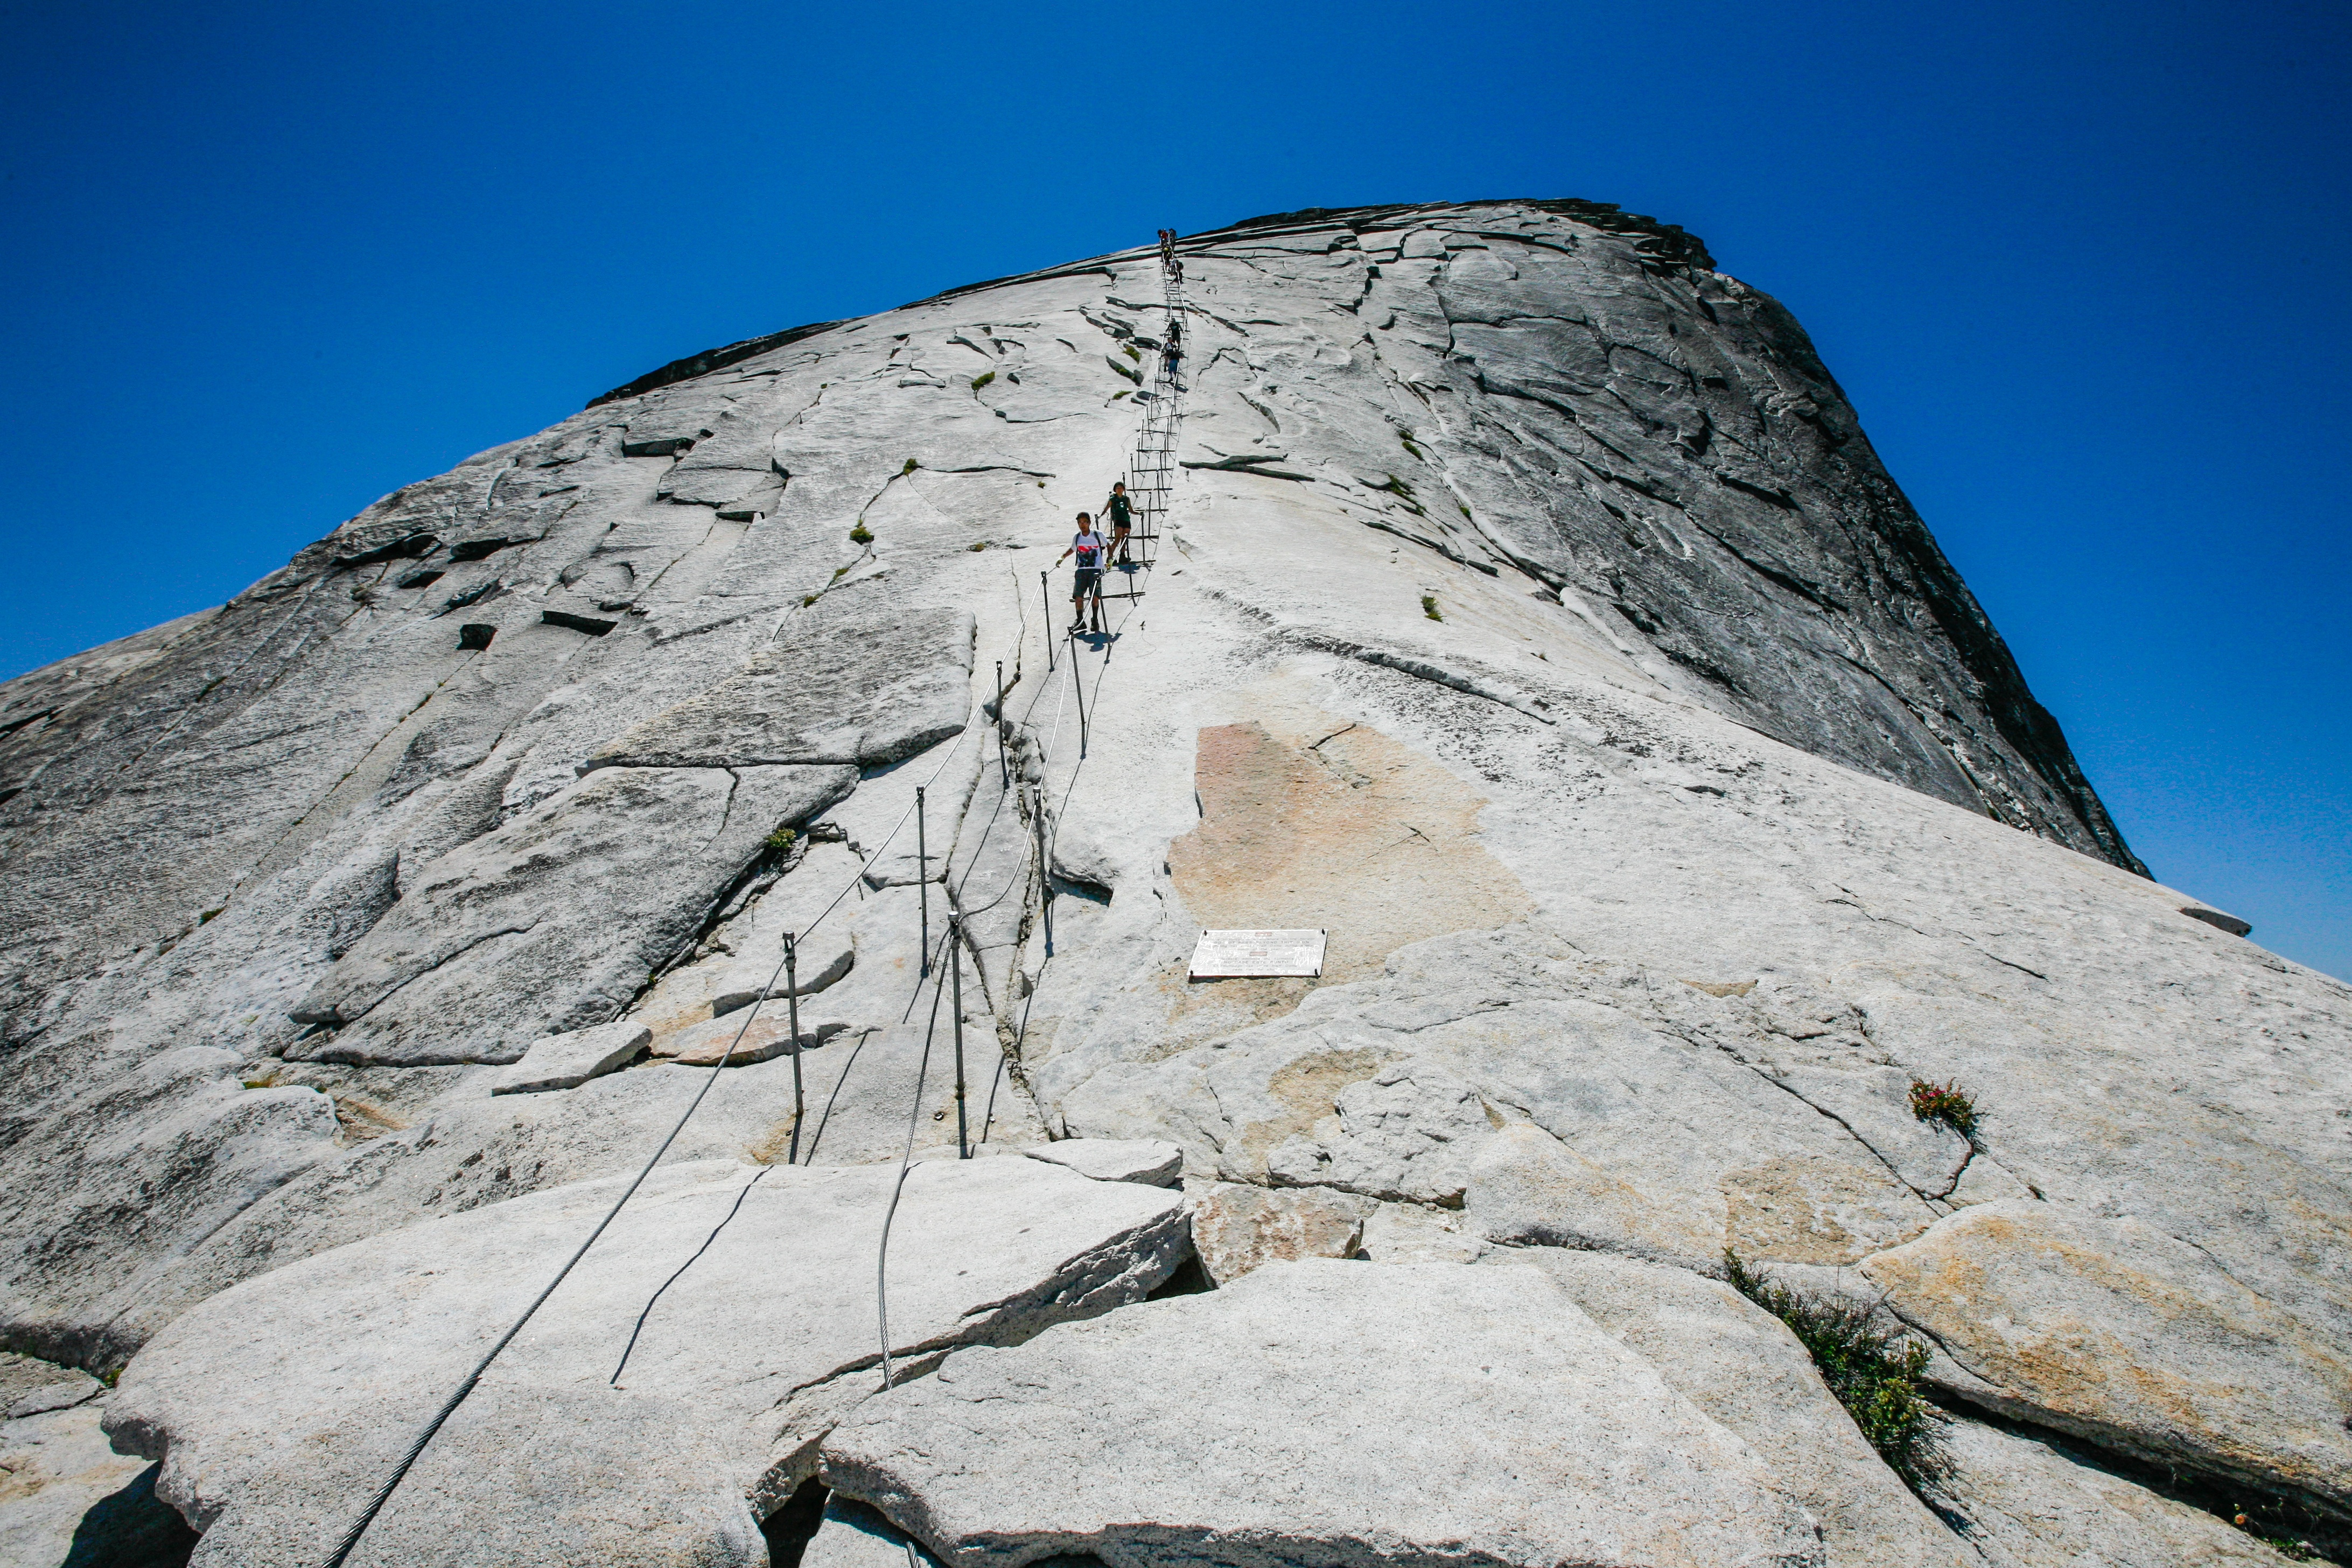 map of earth with File The Climb Up   Half Dome   Yosemite National Park  7617874892 on Pool 1364155 N24 together with Train Cemetery Bolivia furthermore 3132421 besides Kwaj as well 113301.